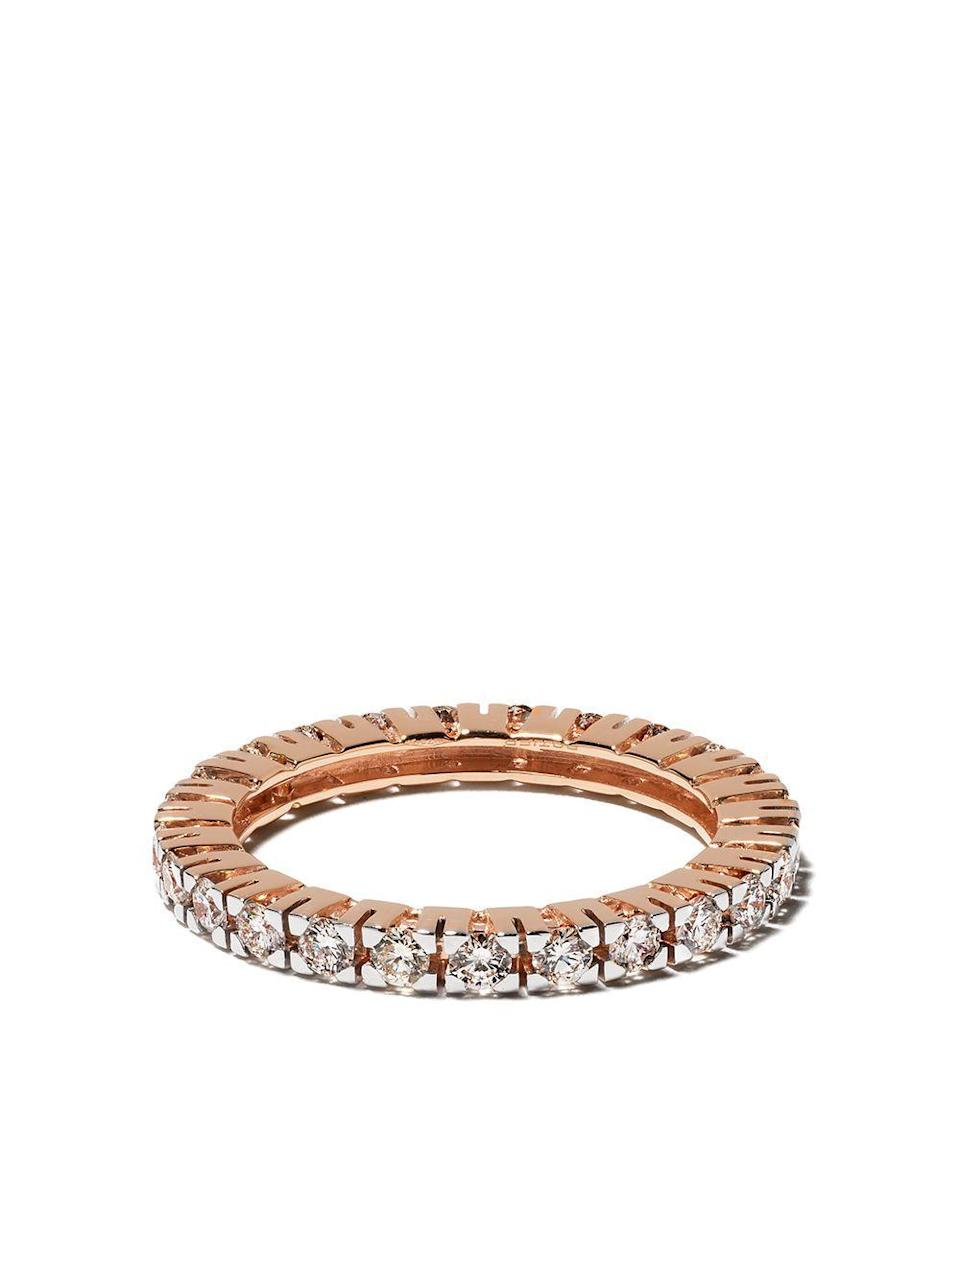 """<p><strong>Botier</strong></p><p>farfetch.com</p><p><strong>$3630.00</strong></p><p><a href=""""https://go.redirectingat.com?id=74968X1596630&url=https%3A%2F%2Fwww.farfetch.com%2Fshopping%2Fwomen%2Fbotier-18kt-rose-gold-big-day-diamond-eternity-ring-item-15196398.aspx&sref=https%3A%2F%2Fwww.harpersbazaar.com%2Ffashion%2Ftrends%2Fg5645%2Fmothers-day-gift-guide%2F"""" rel=""""nofollow noopener"""" target=""""_blank"""" data-ylk=""""slk:Shop Now"""" class=""""link rapid-noclick-resp"""">Shop Now</a></p><p>Diamonds are forever</p>"""